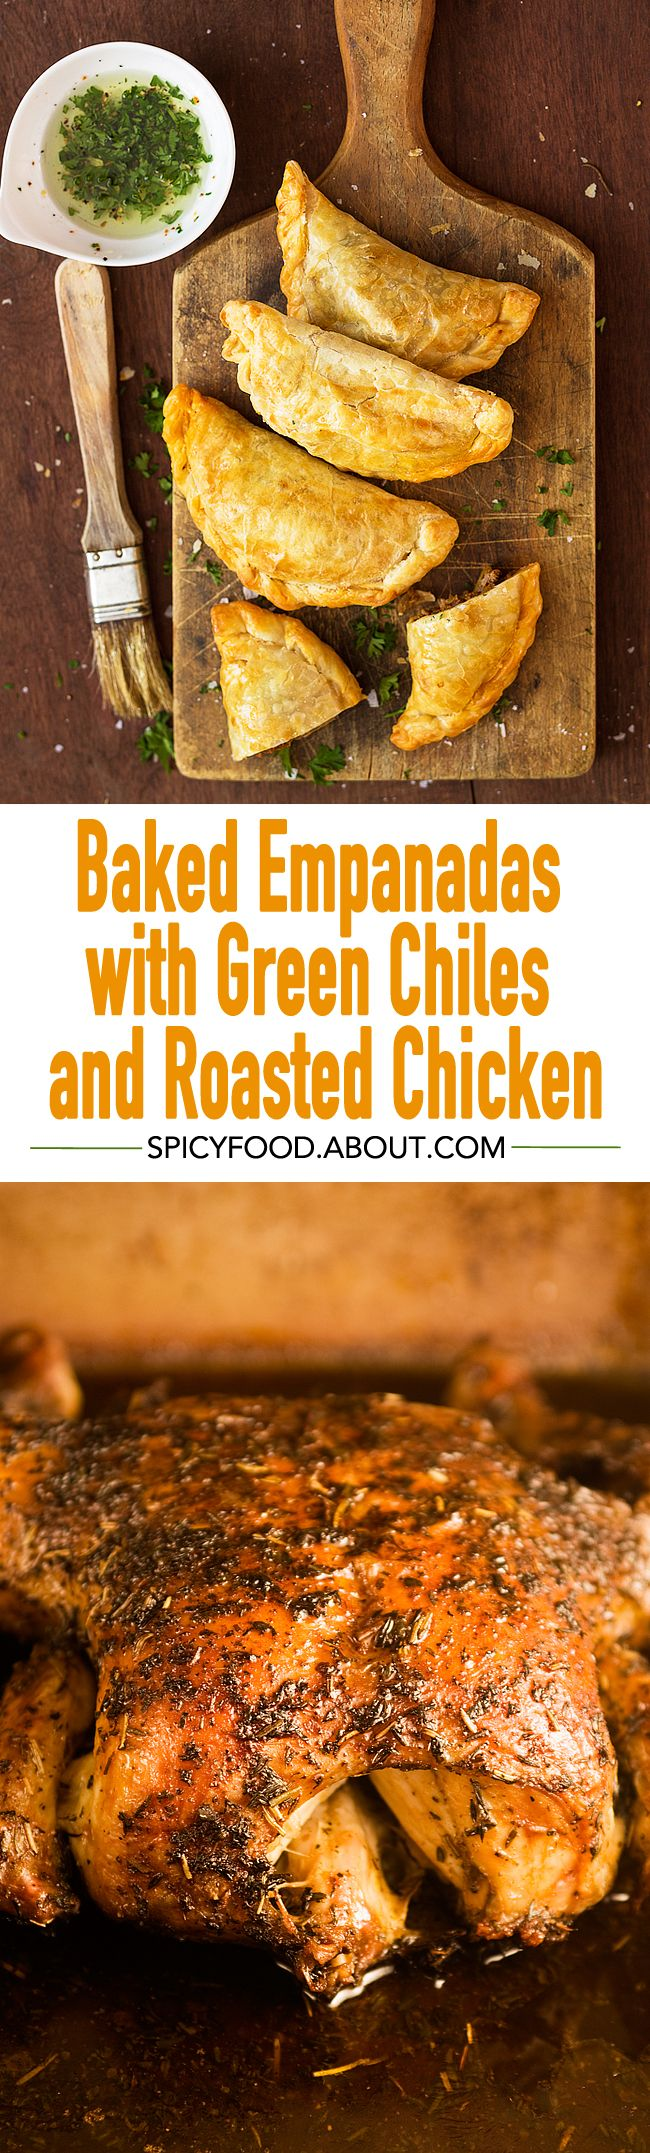 Empanadas Stuffed with Green Chiles                                                                                                                                                      More